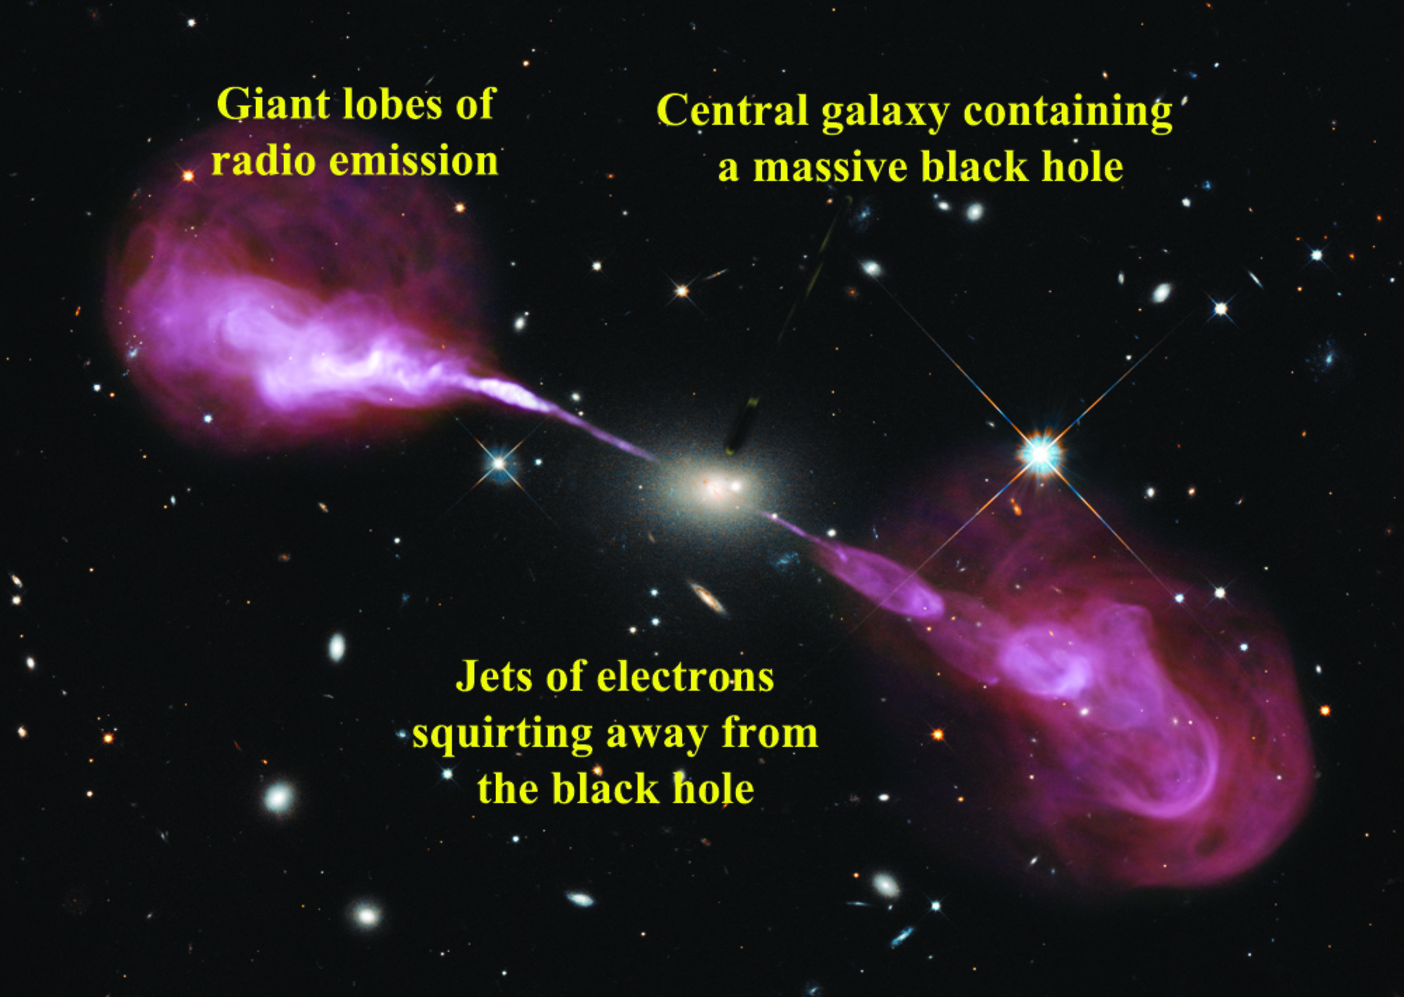 A radio galaxy (Hercules A) powered by a black hole, based on image from the National Radio Astronomy Observatory, showing the radio emission (red) superimposed on the optical emission (white). Credits for original image: NASA, ESA, S. Baum and C O'Dea (RIT), R Perley and W Cotton (NRAO/AUI/NS), and the Hubble Heritage Team (STScI/AURA), Author provided